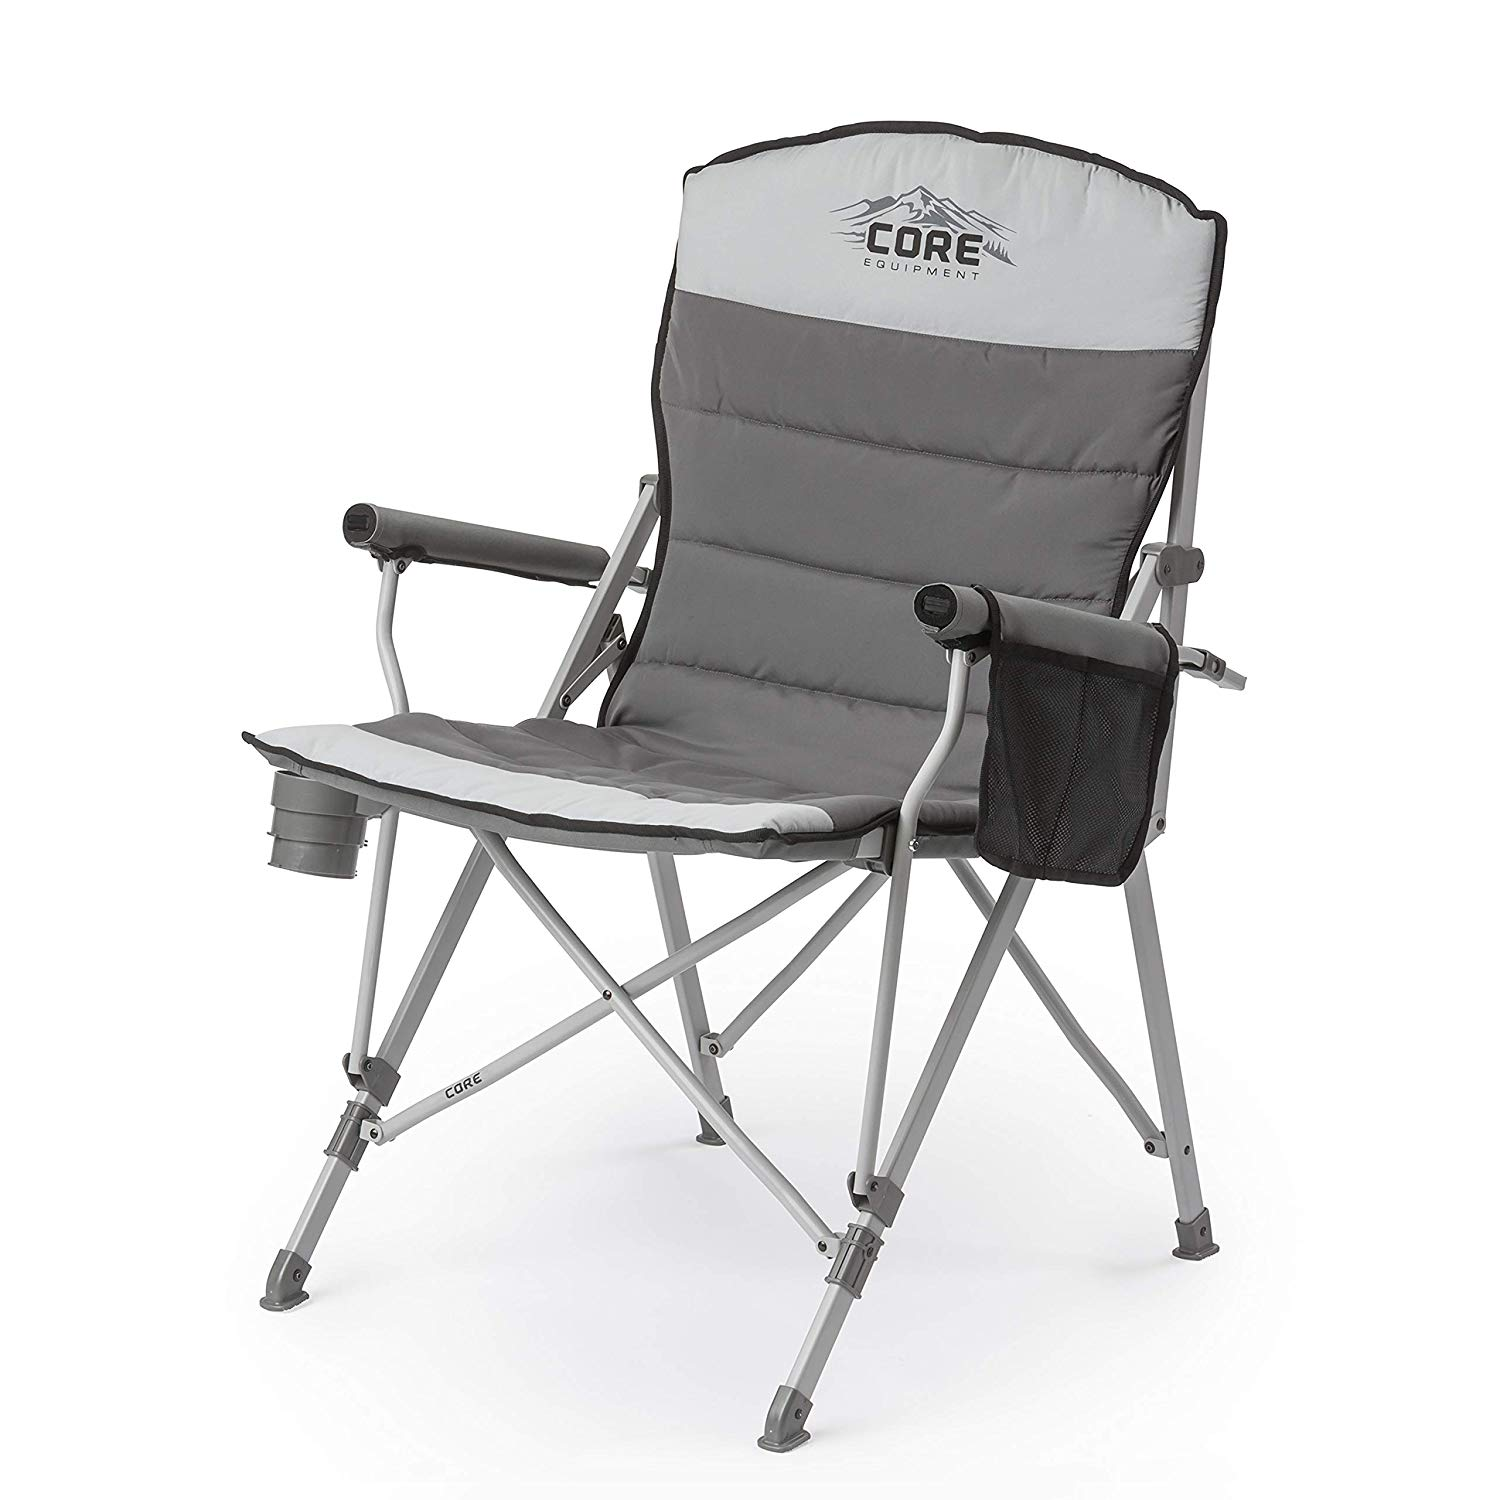 CORE 40021 Equipment Folding Padded Hard Arm Chair with Carry Bag